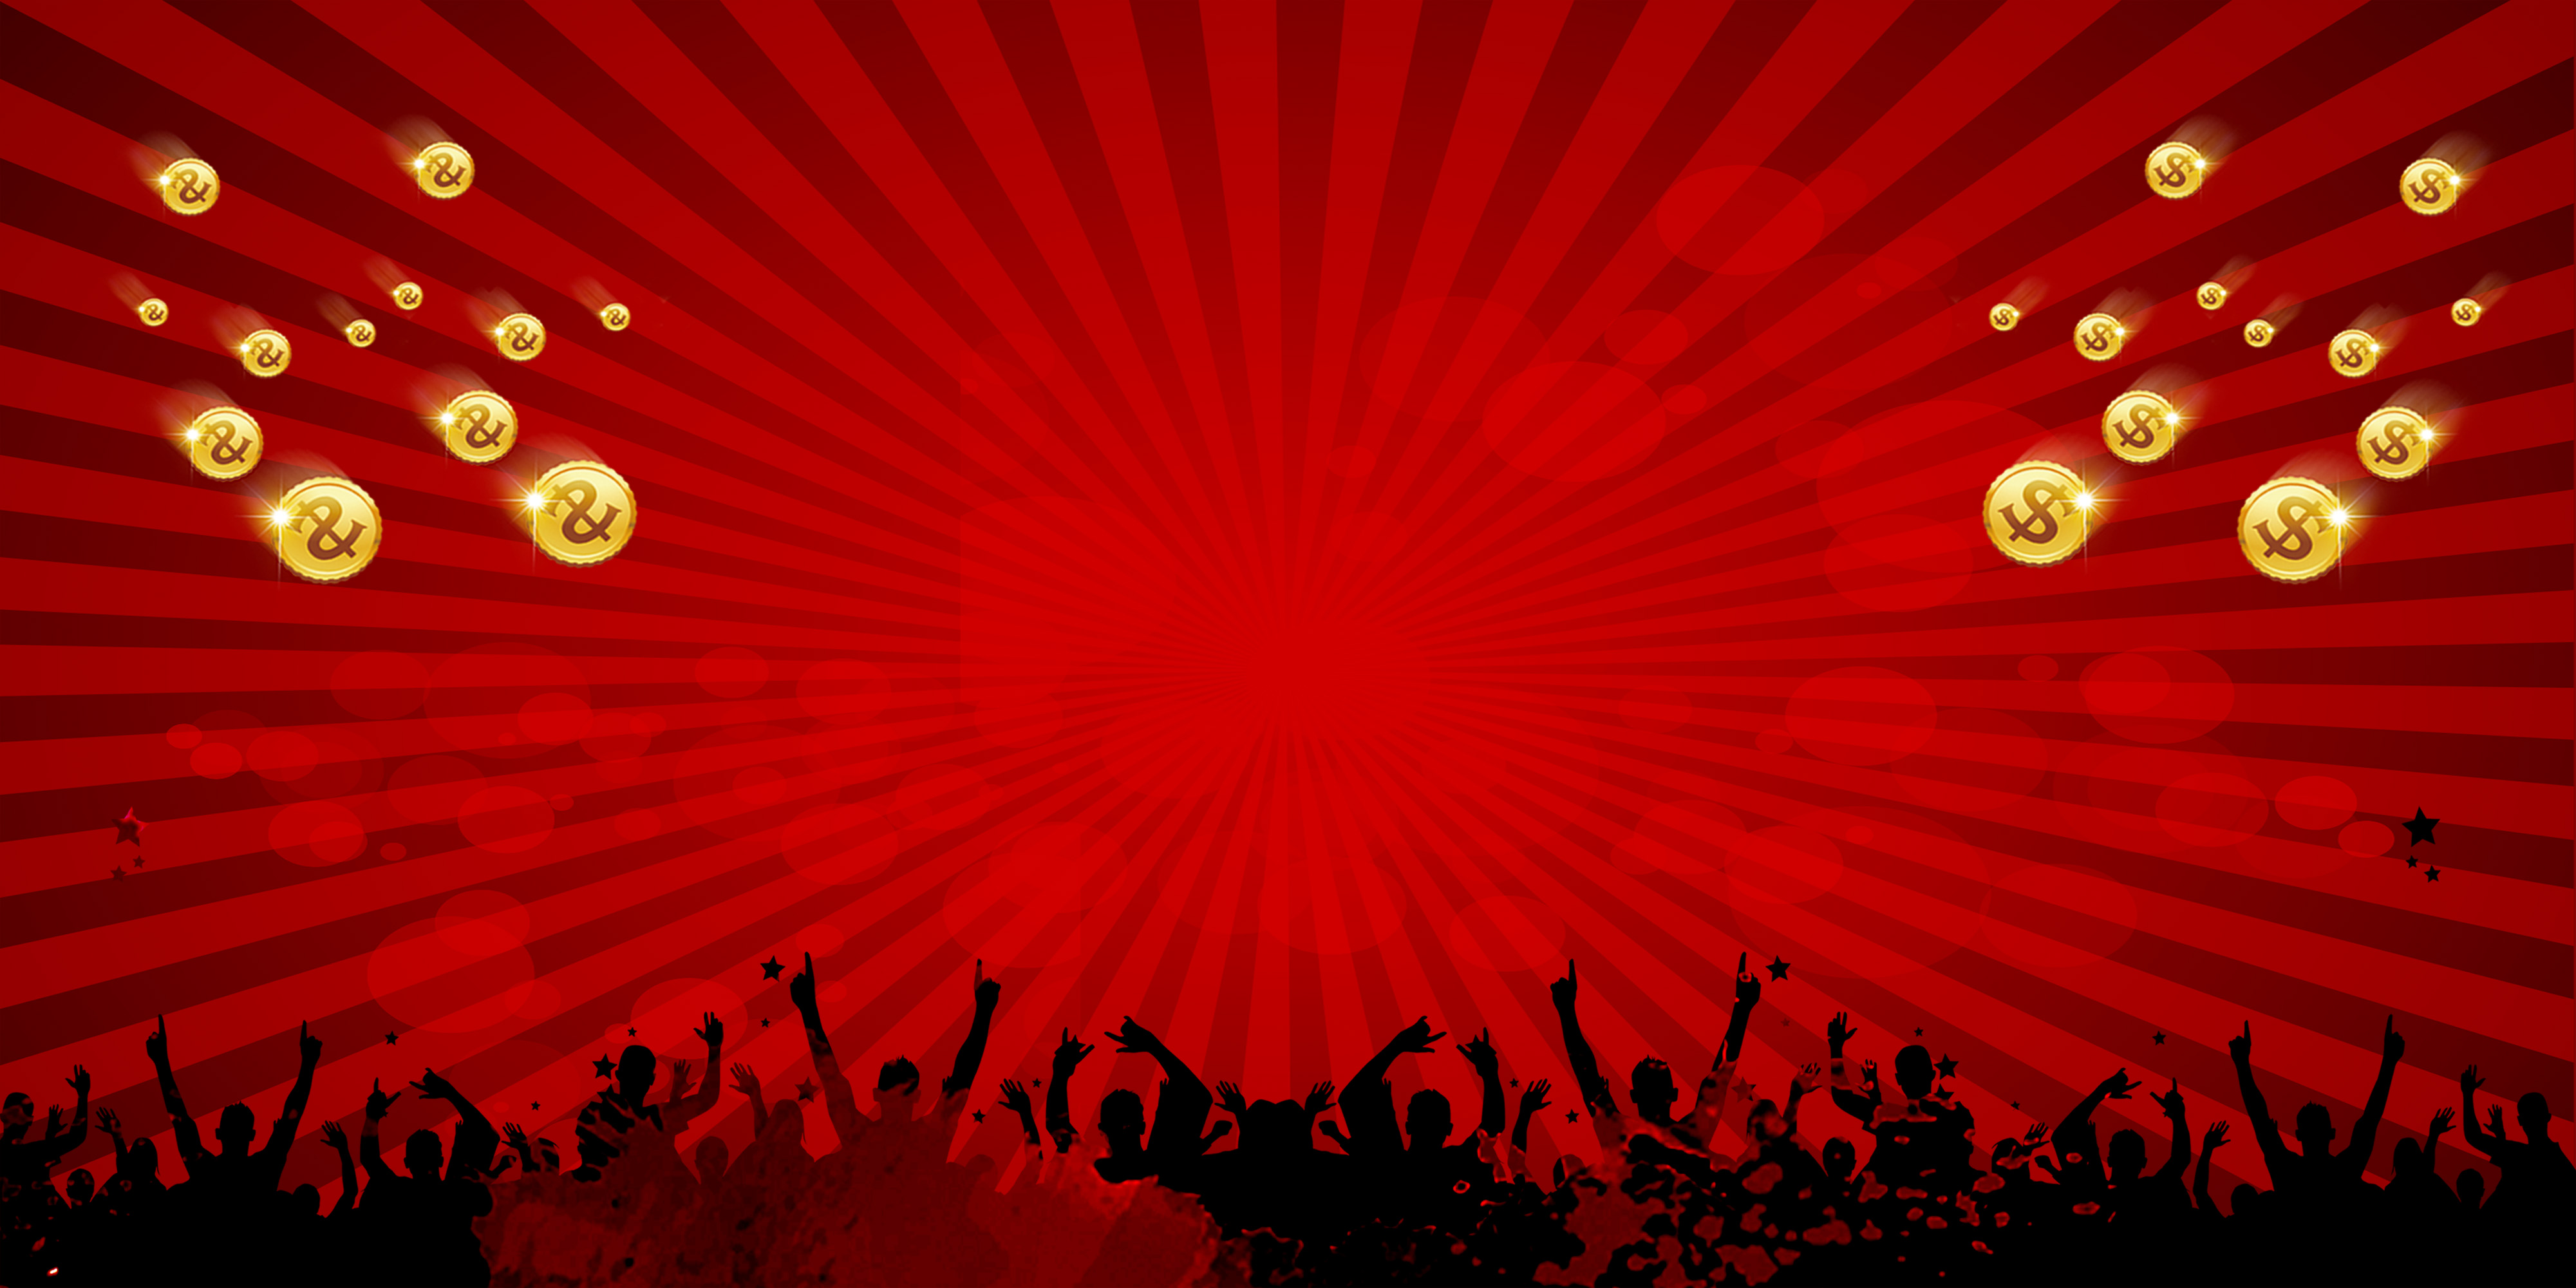 red gala concert poster background material  red  carnival